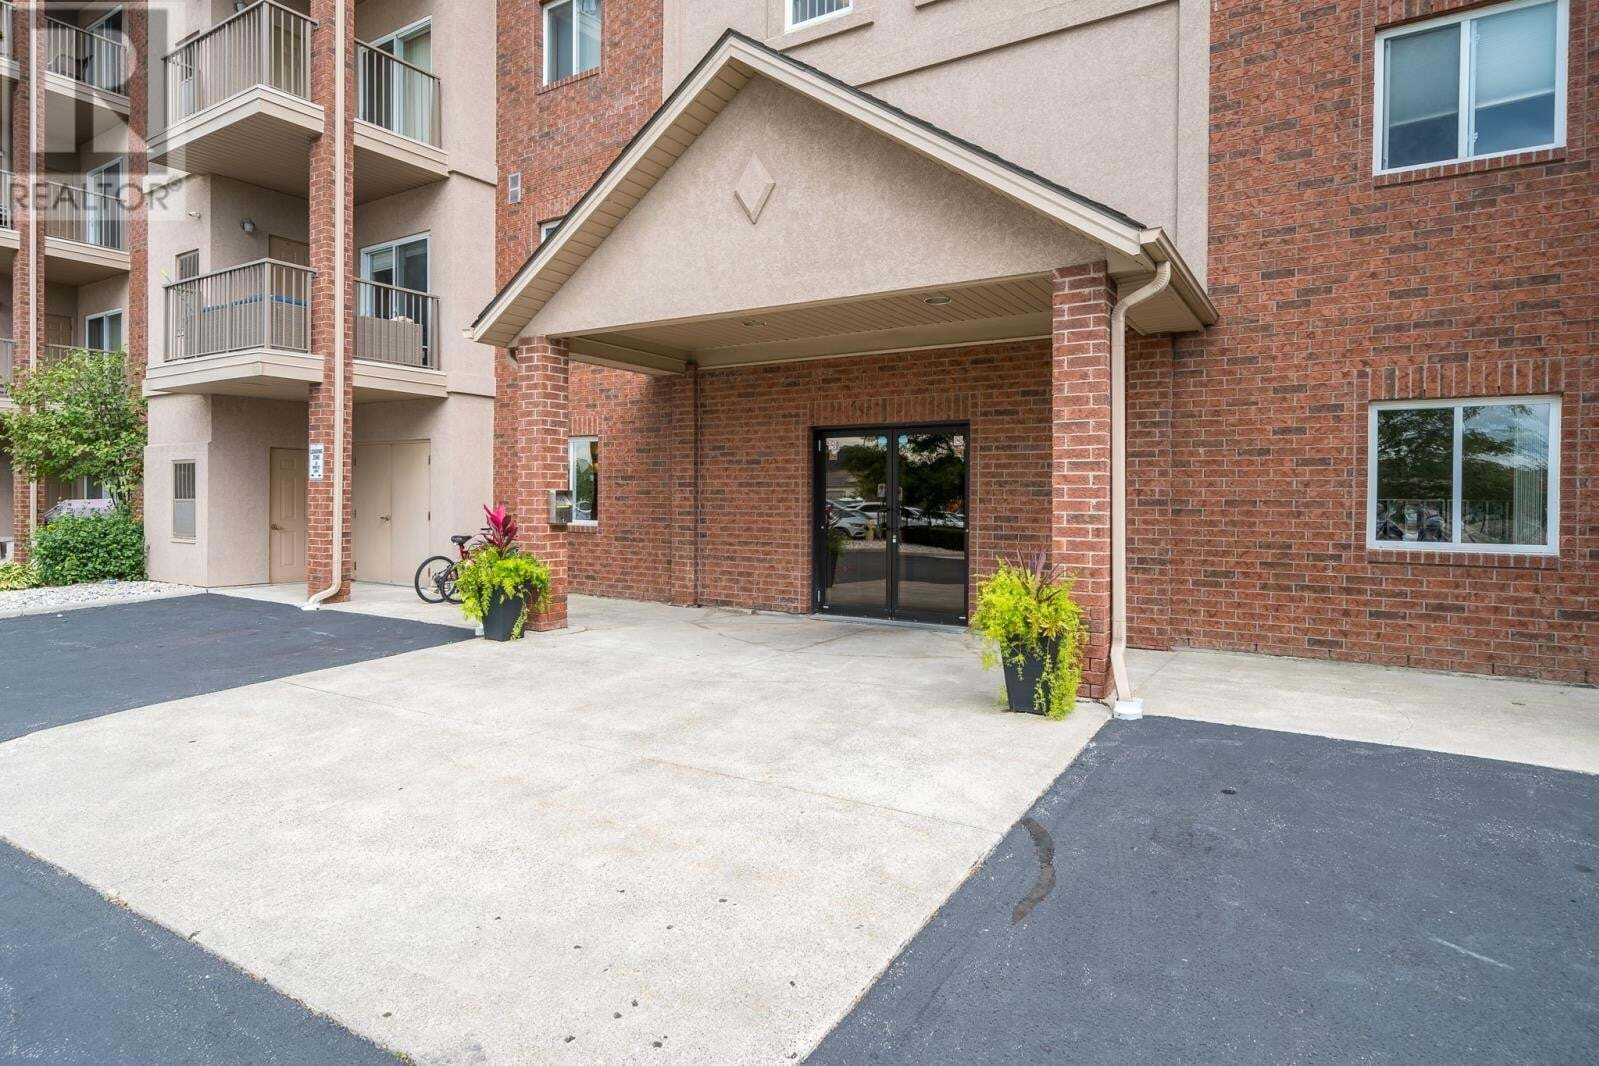 Condo for sale at 2650 Sandwich West Pw Unit 203 Lasalle Ontario - MLS: 20012419